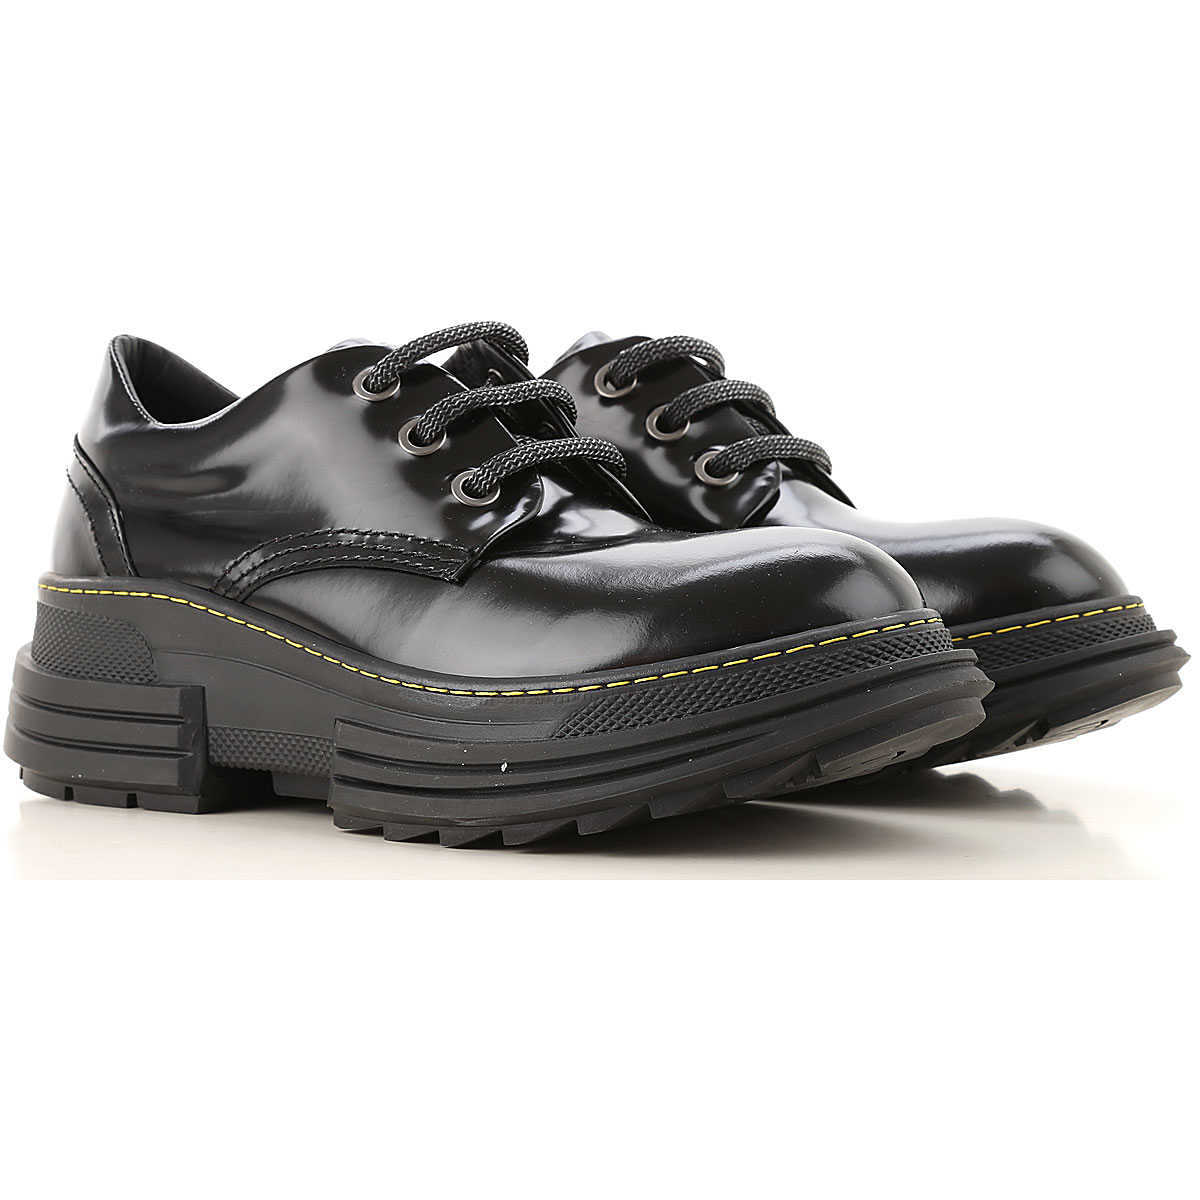 Beyond Lace Up Shoes for Men Oxfords 3.5 4.5 5.5 6.5 7.5 8.5 Derbies and Brogues UK - GOOFASH